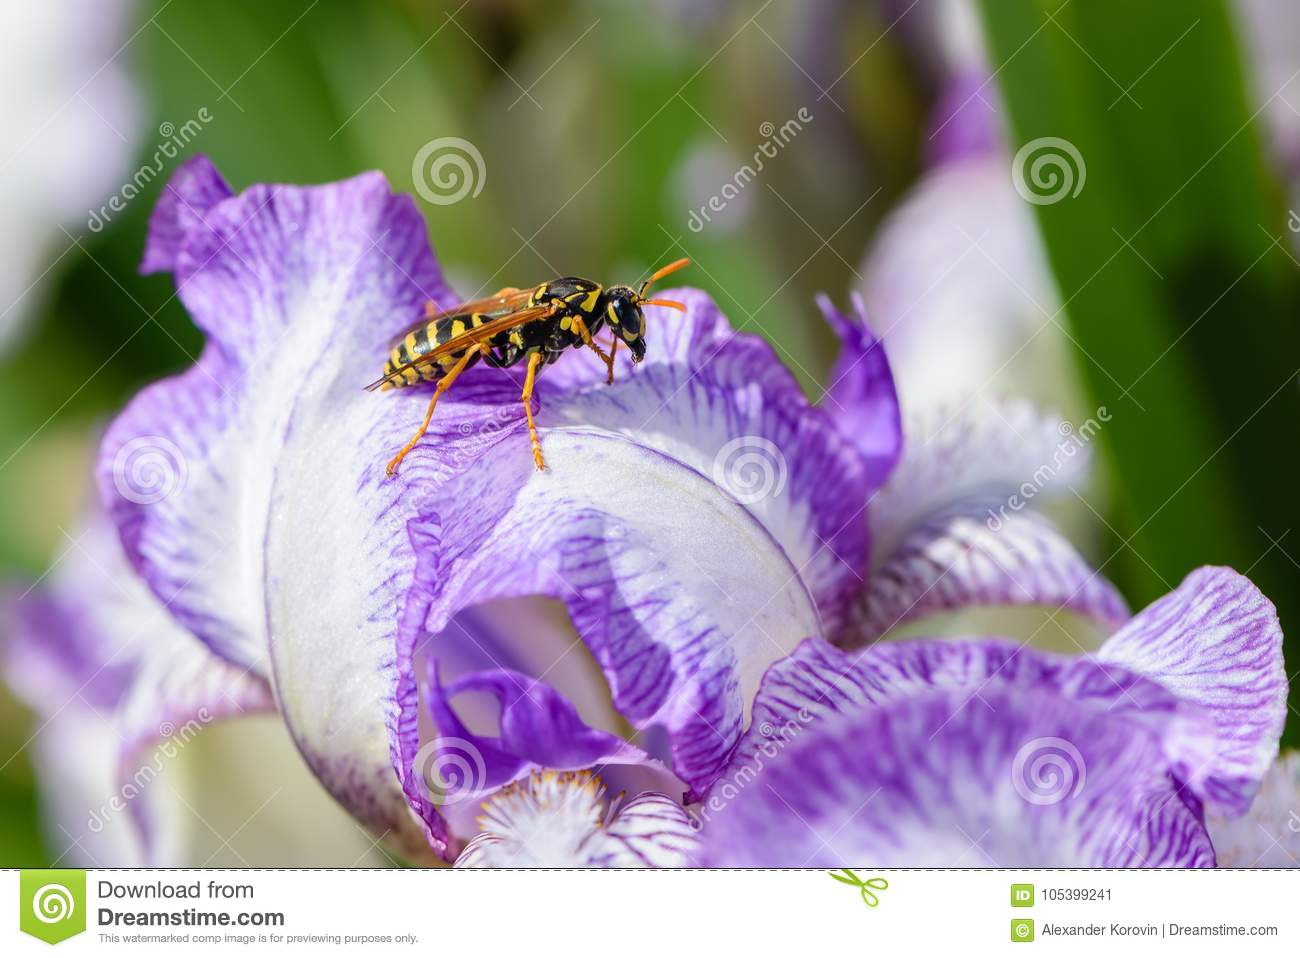 The Wasp Sits On An Iris Flower With Large White Petals With A Lilac